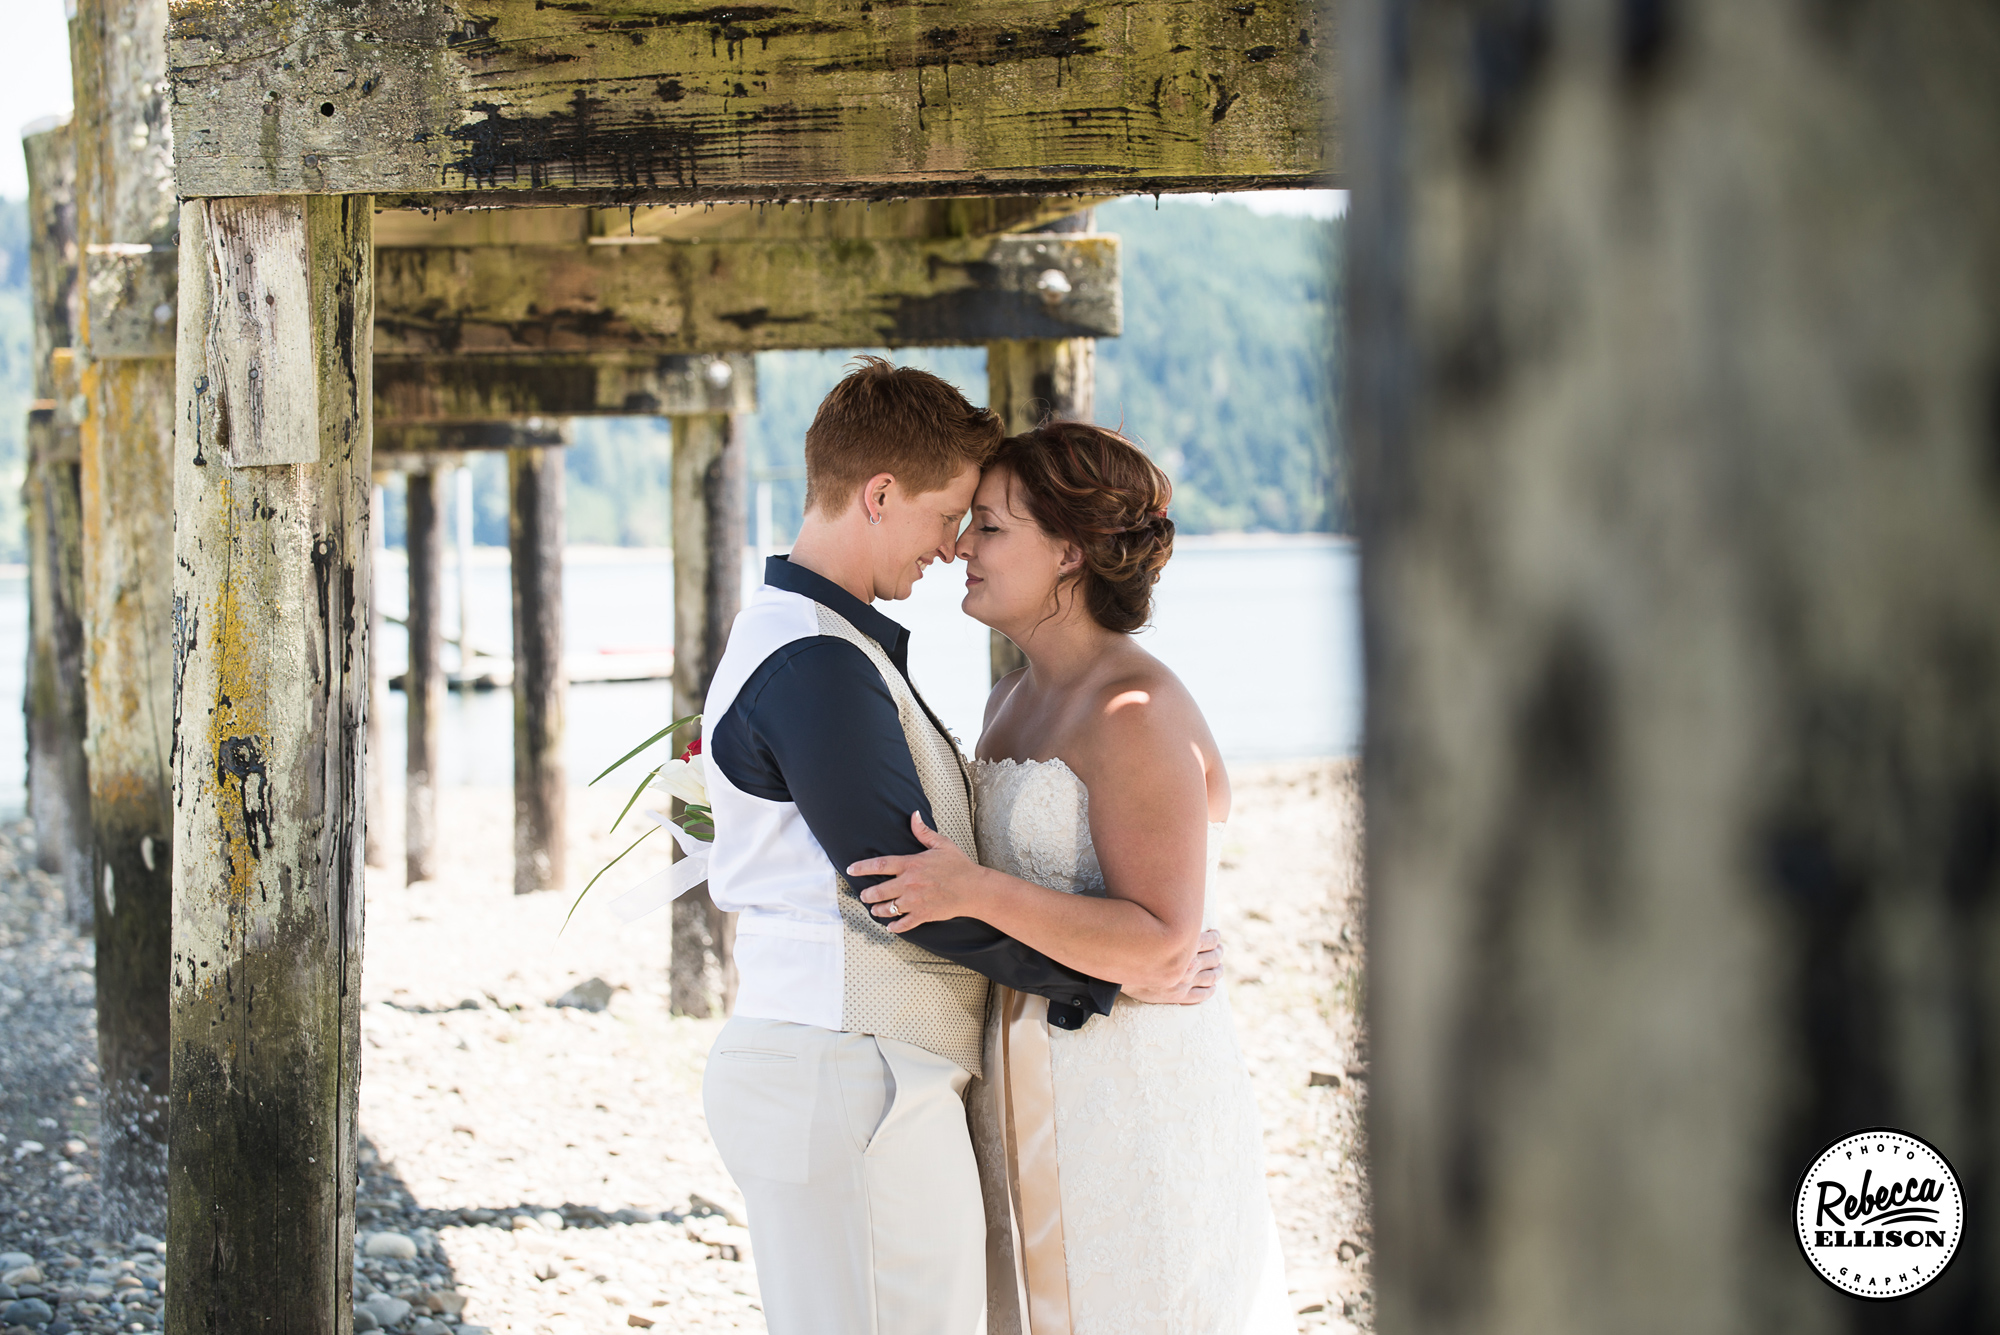 Beachfront wedding portraits of a same sex couple standing under a dock photographed by Rebecca Ellison Photography